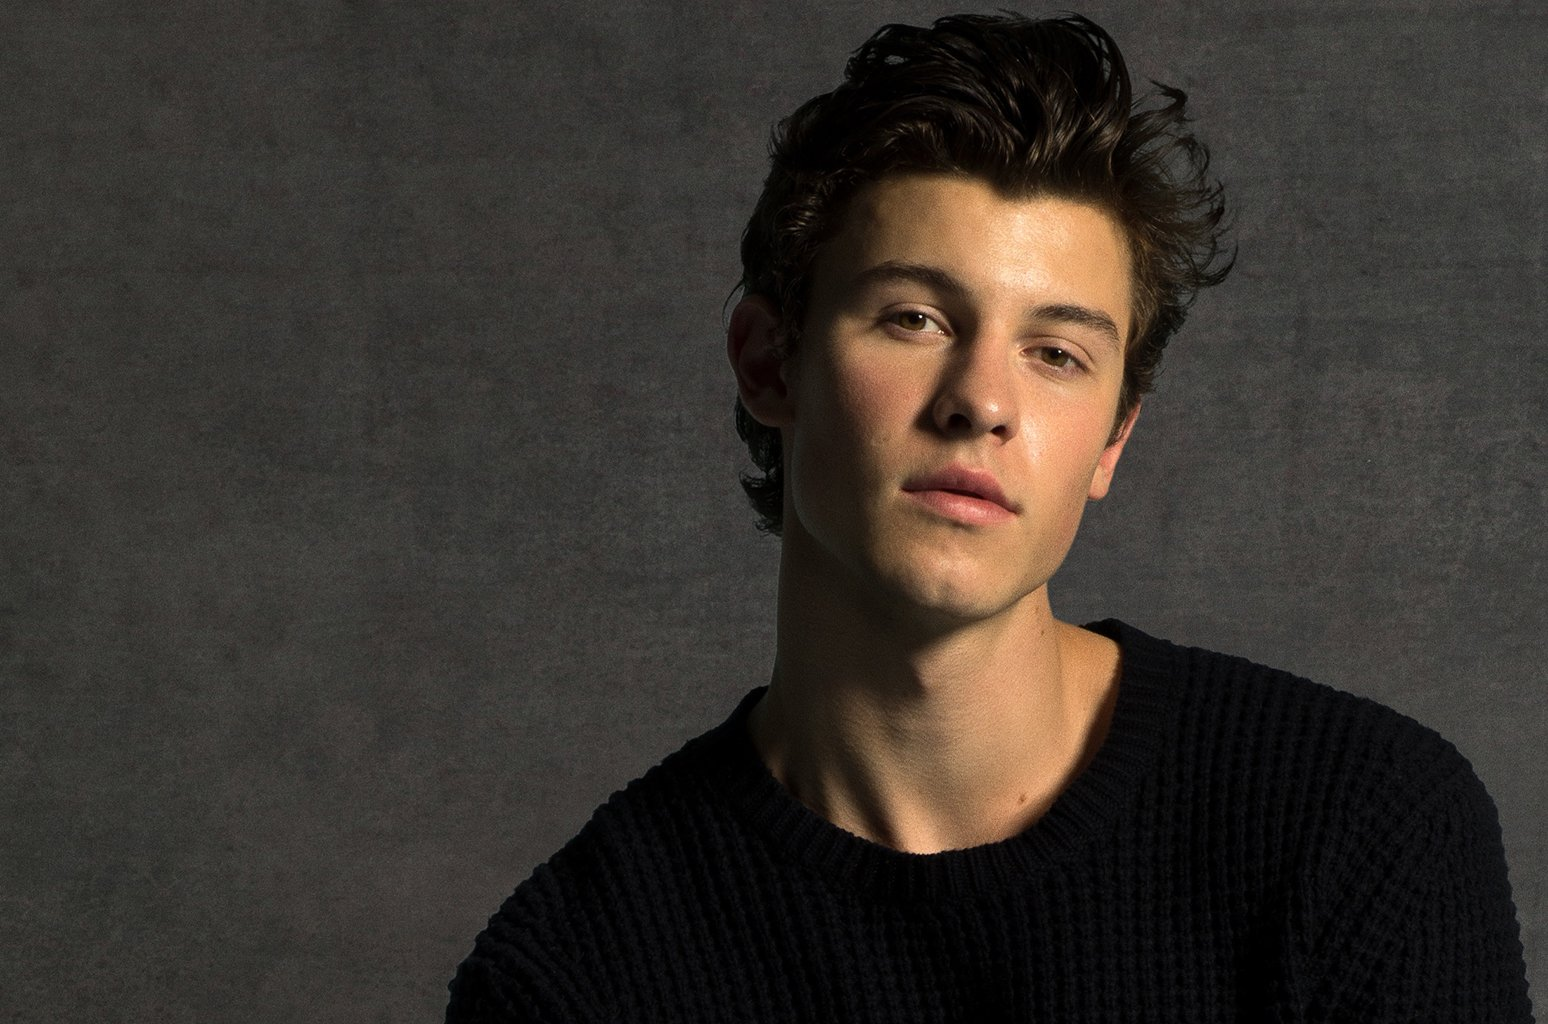 Album of the Week: @ShawnMendes matures on striking self-titled effort https://t.co/Ei3SJPfp6g https://t.co/mnCcquWdJw